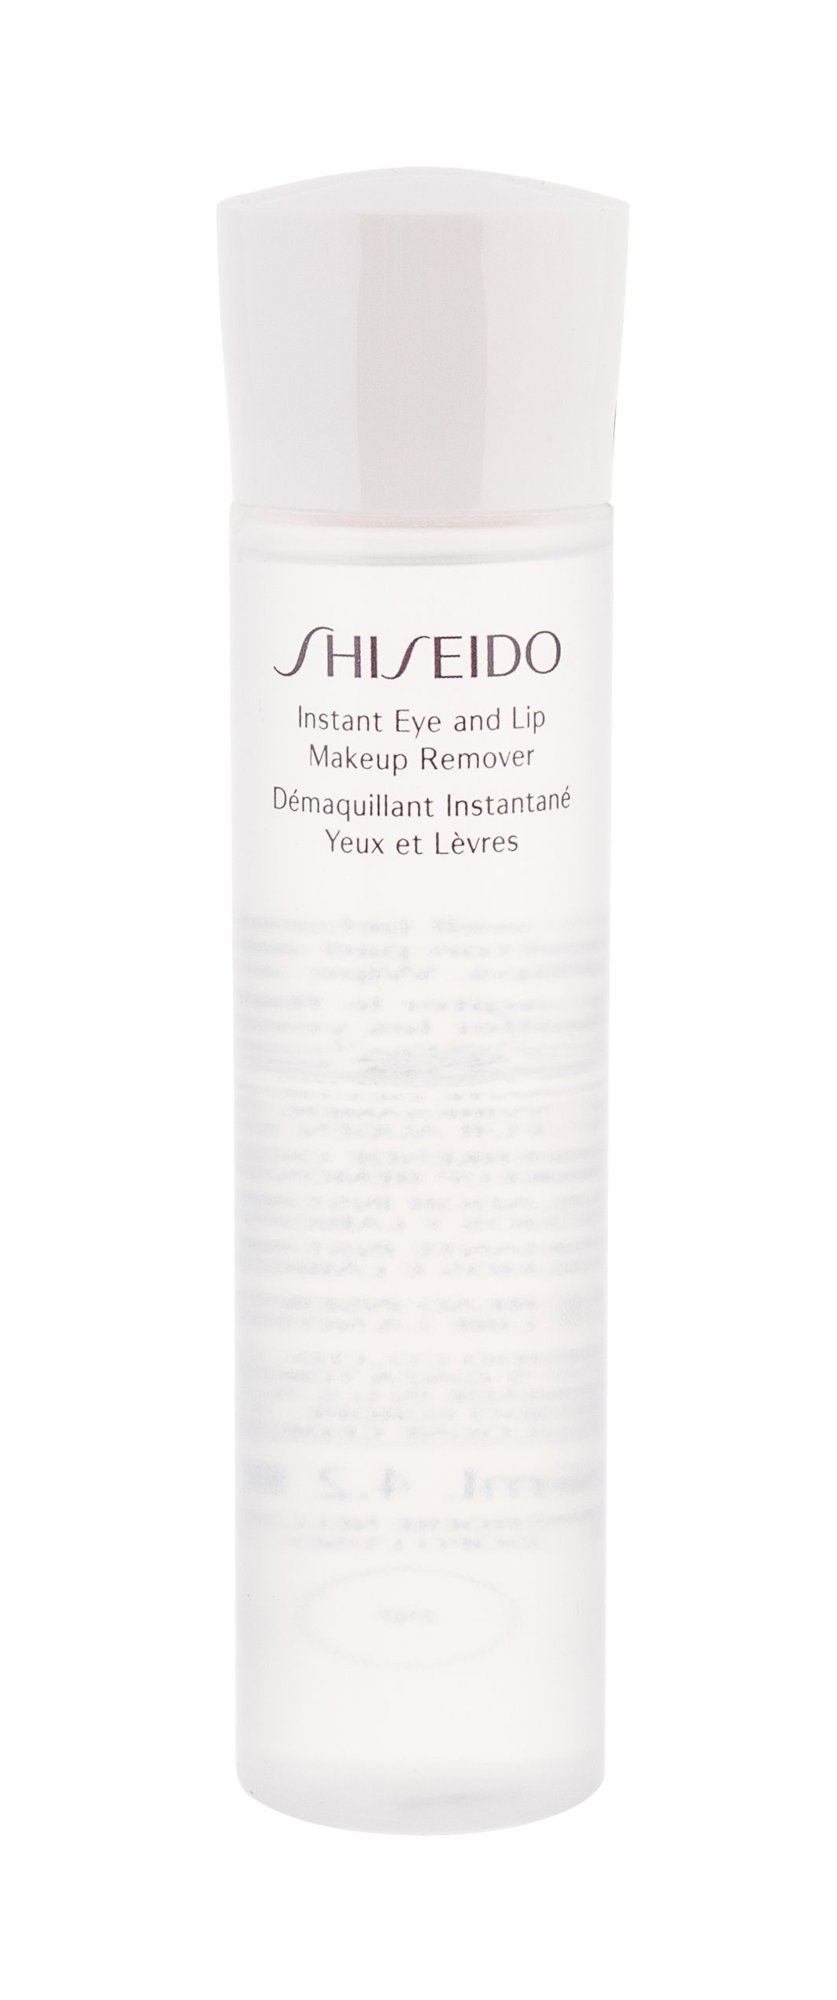 Shiseido Instant Eye And Lip Makeup Remover Cosmetic 125ml